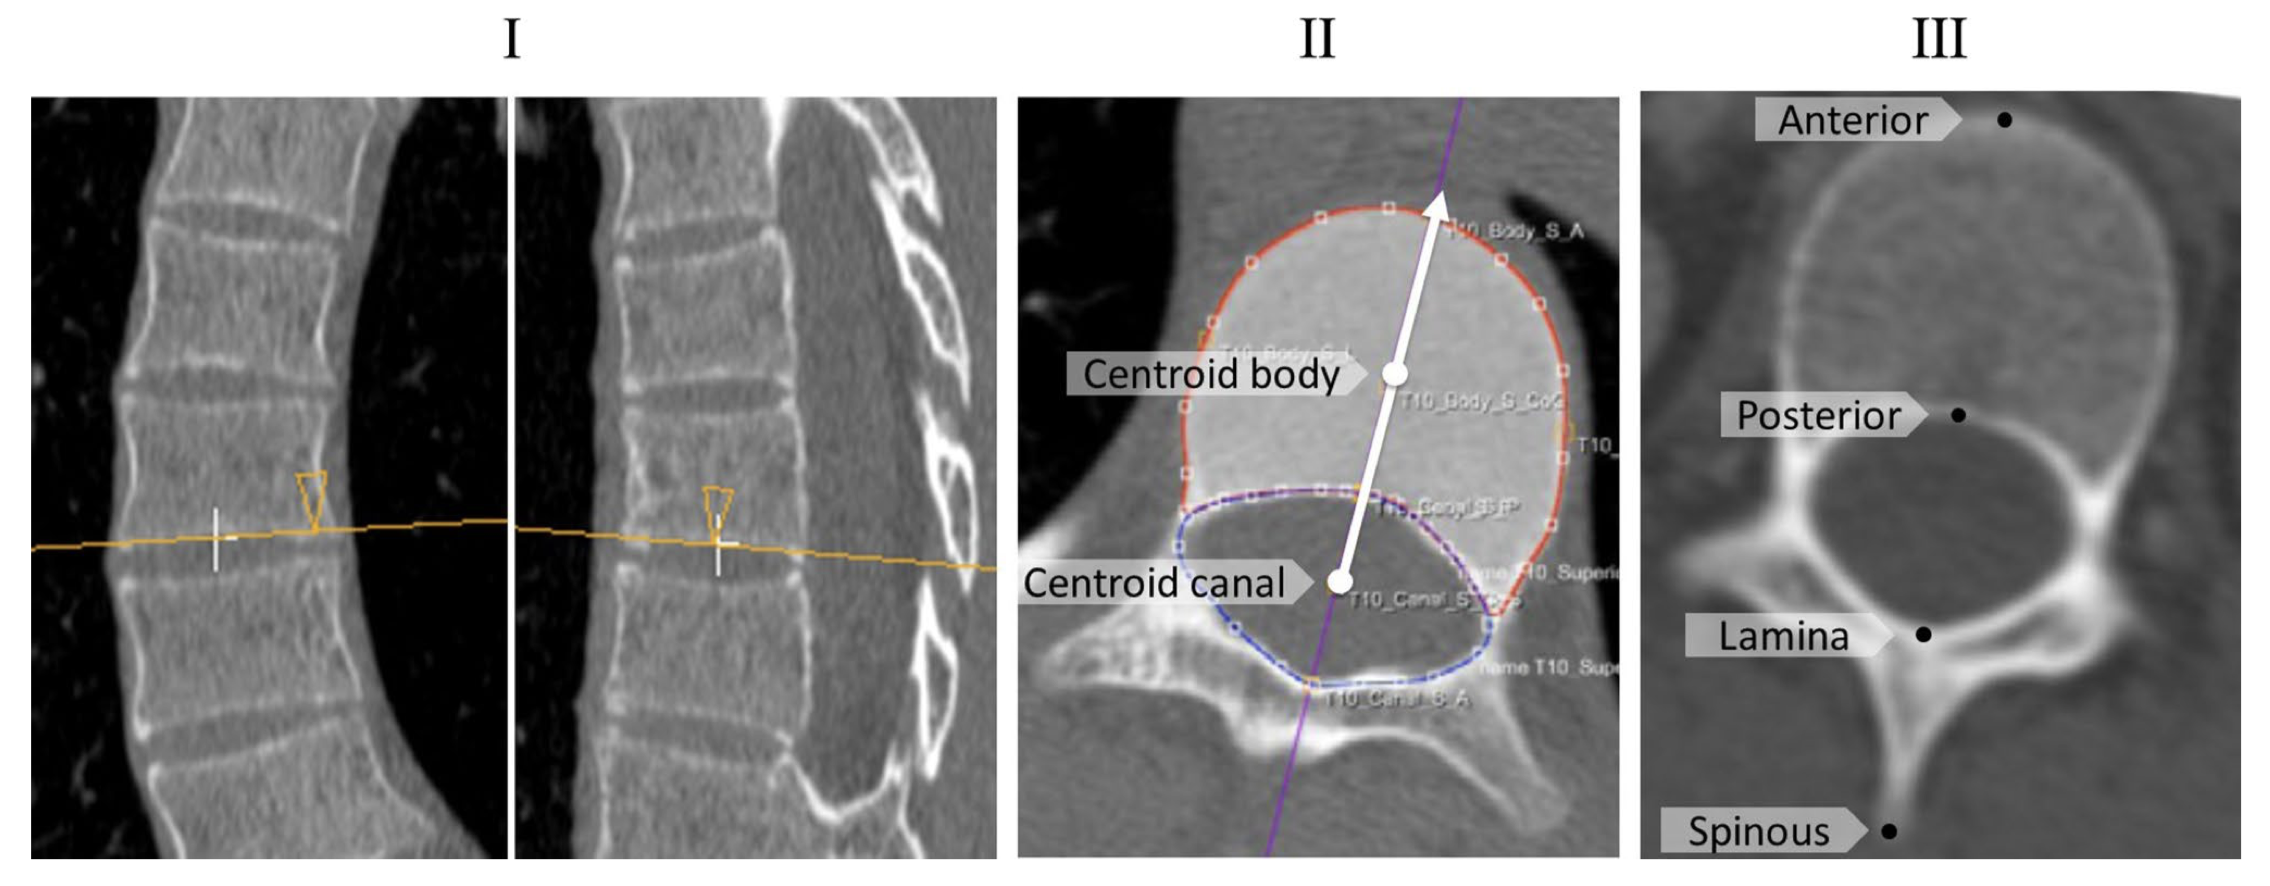 CT-based study of vertebral and intravertebral rotation in right thoracic adolescent idiopathic scoliosis